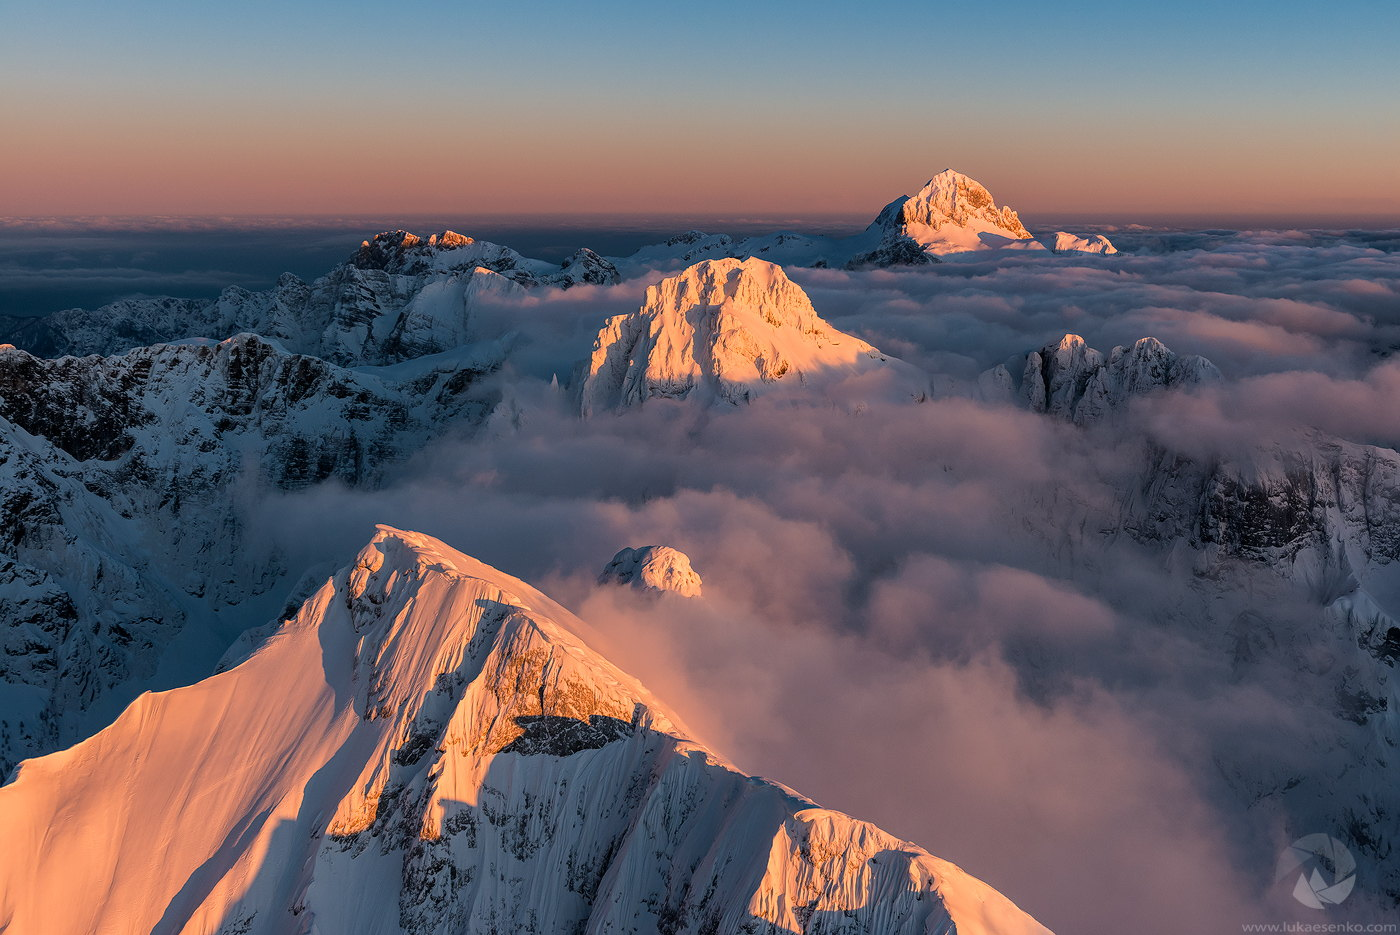 The highest mountains of the Julian Alps peaking out of the fog, colored pink by the sunset, captured from air by Luka Essenko.